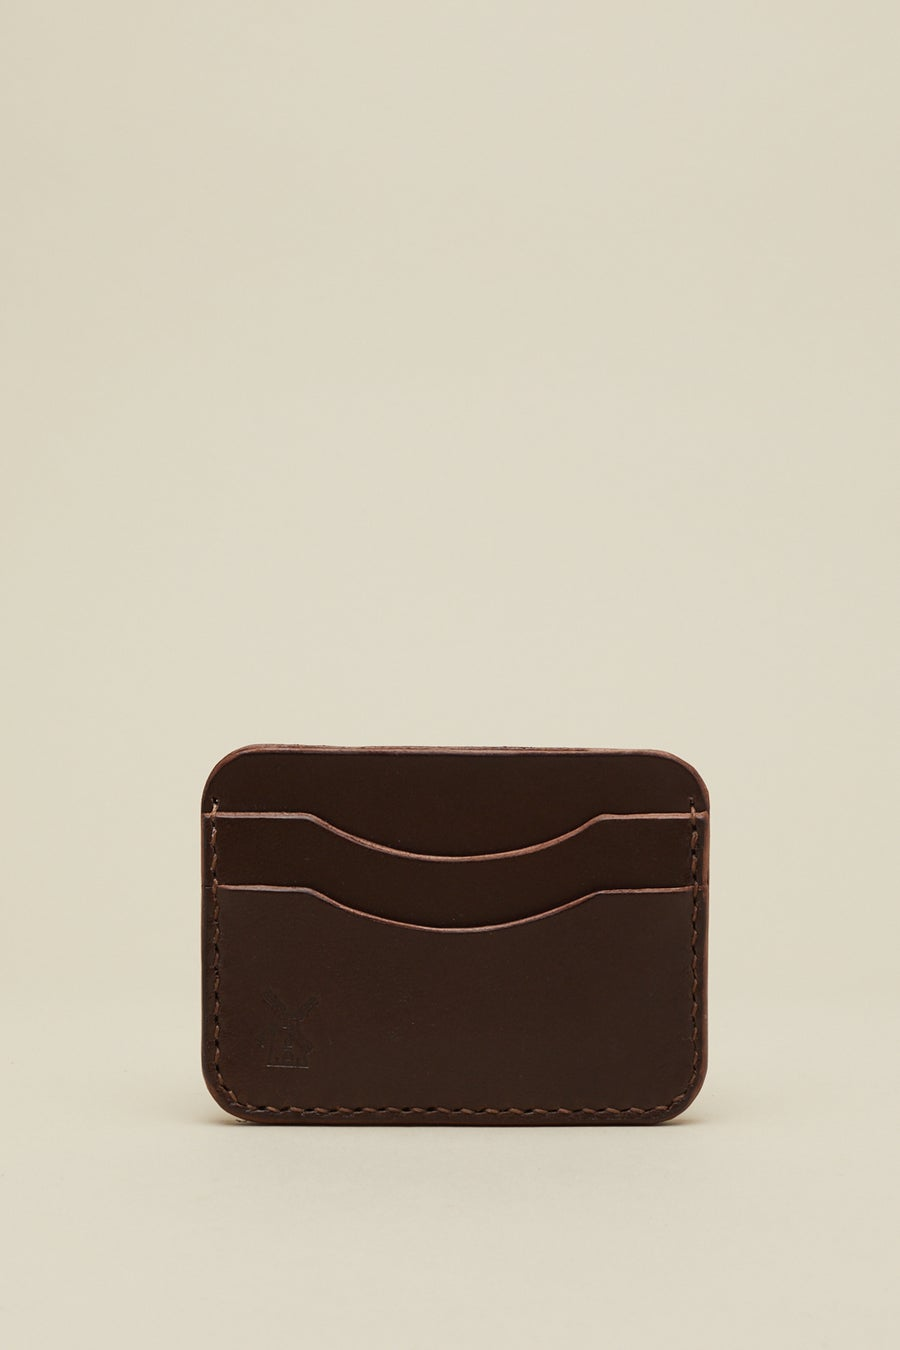 Image of Double Card Holder in Walnut